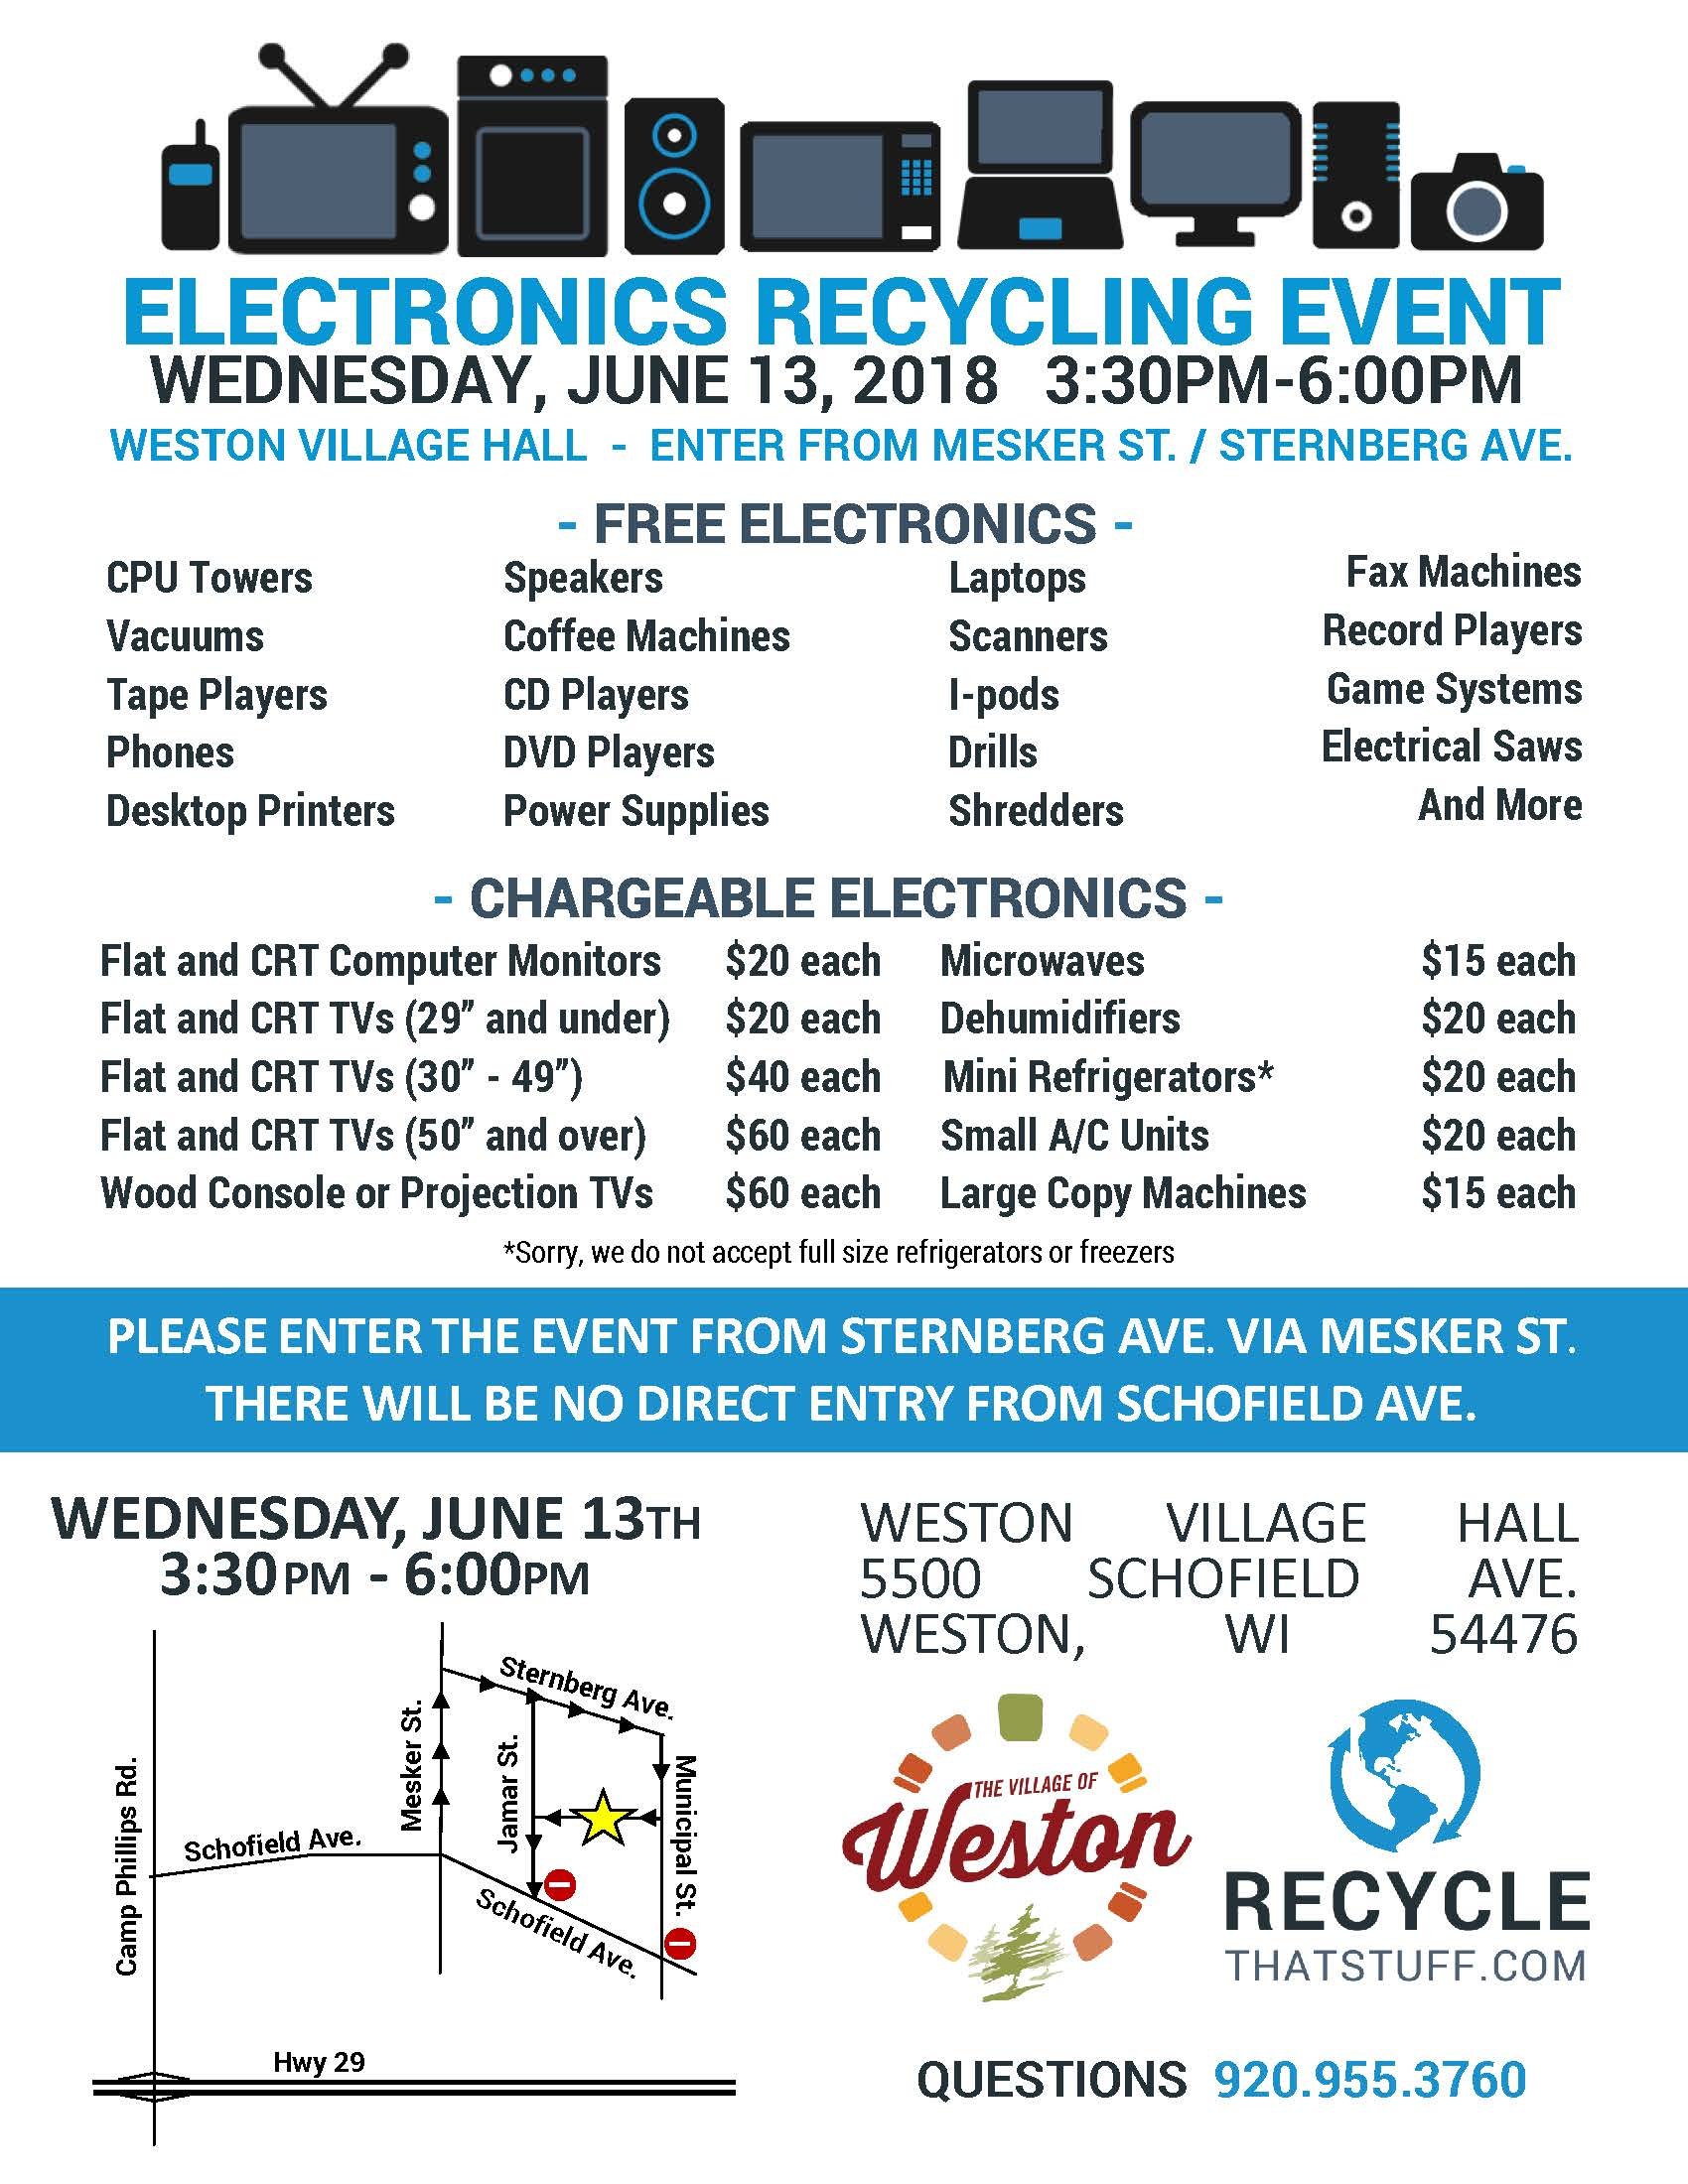 180613 Electronics Recycling Event Flyer